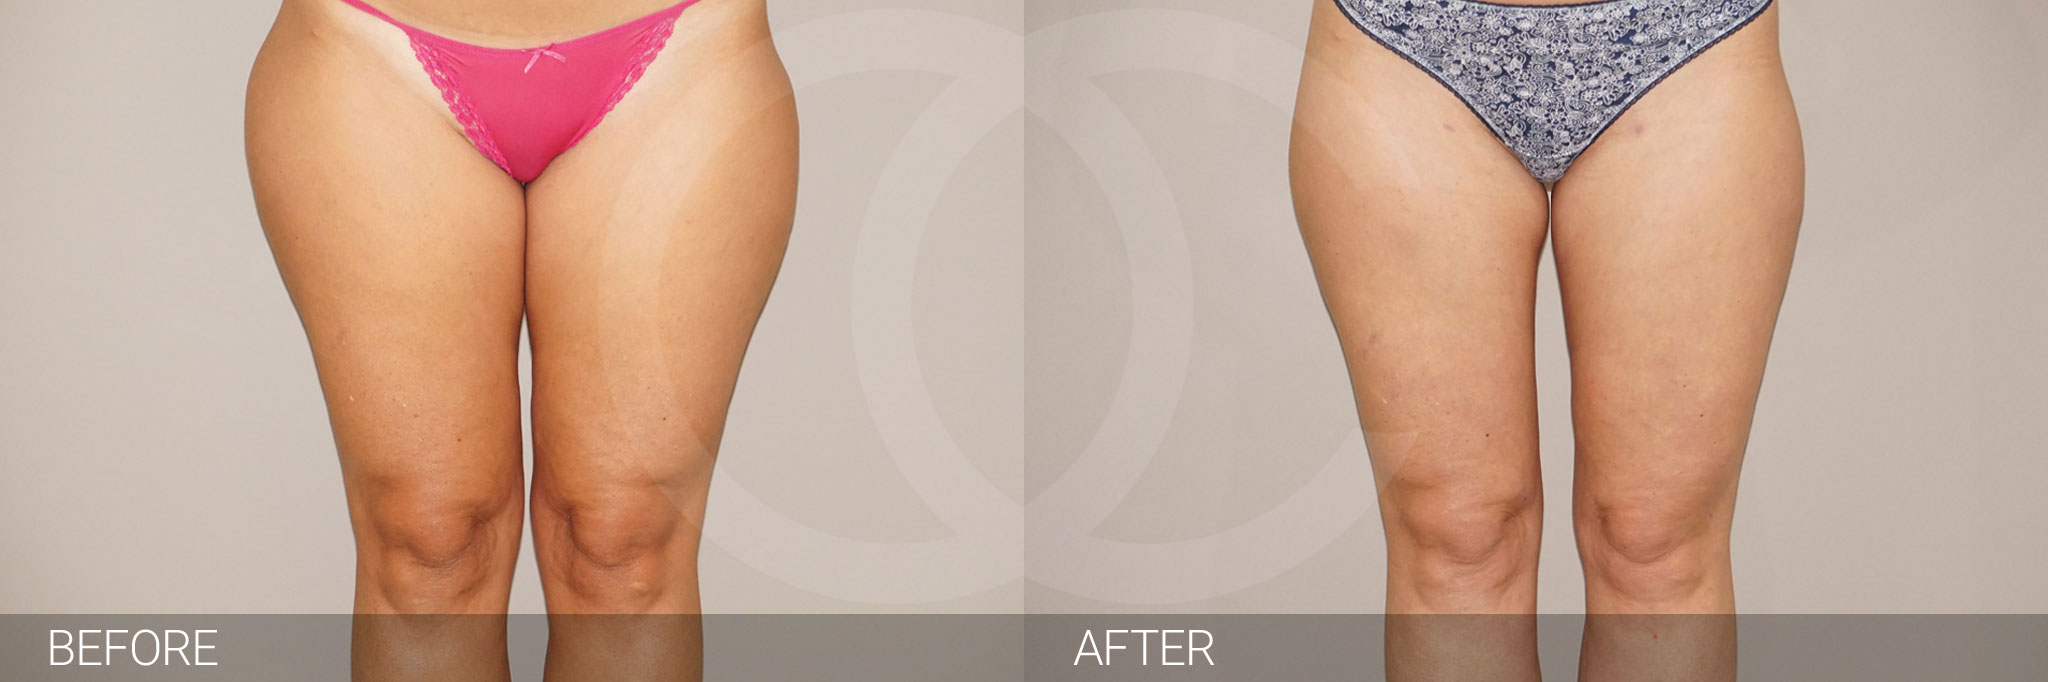 Liposuction Waterjet-assisted Liposuction ante/post-op II